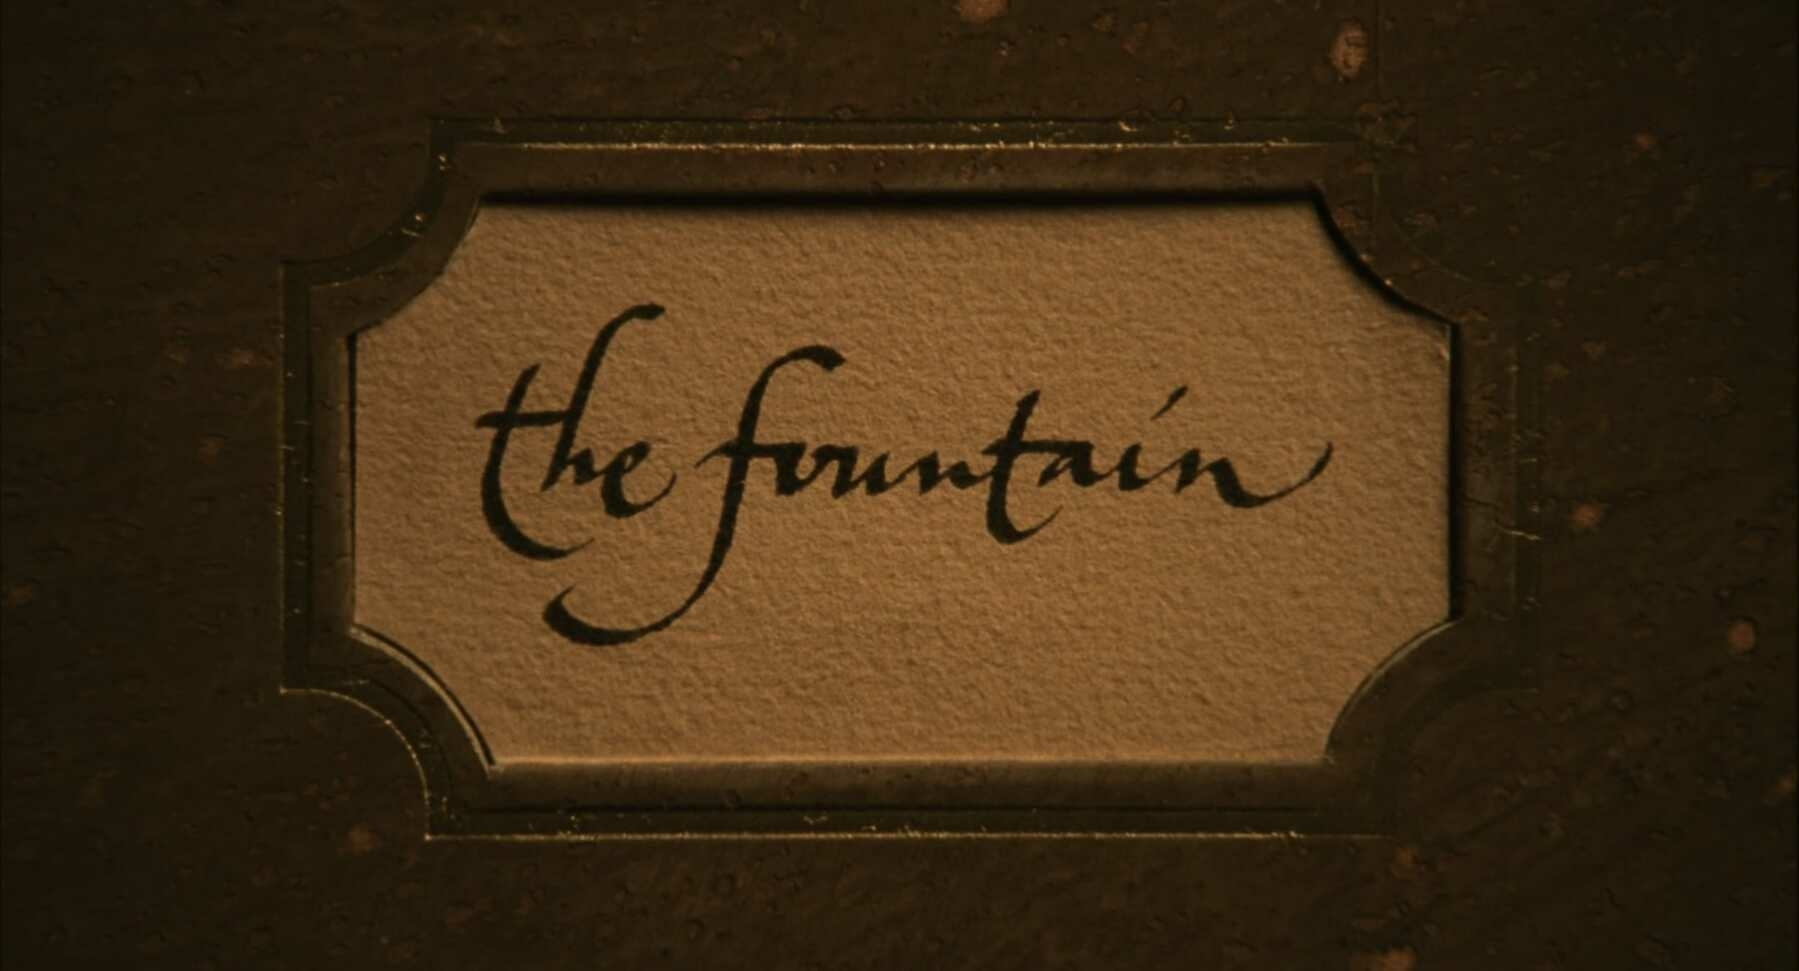 The title card for the film, The Fountain.